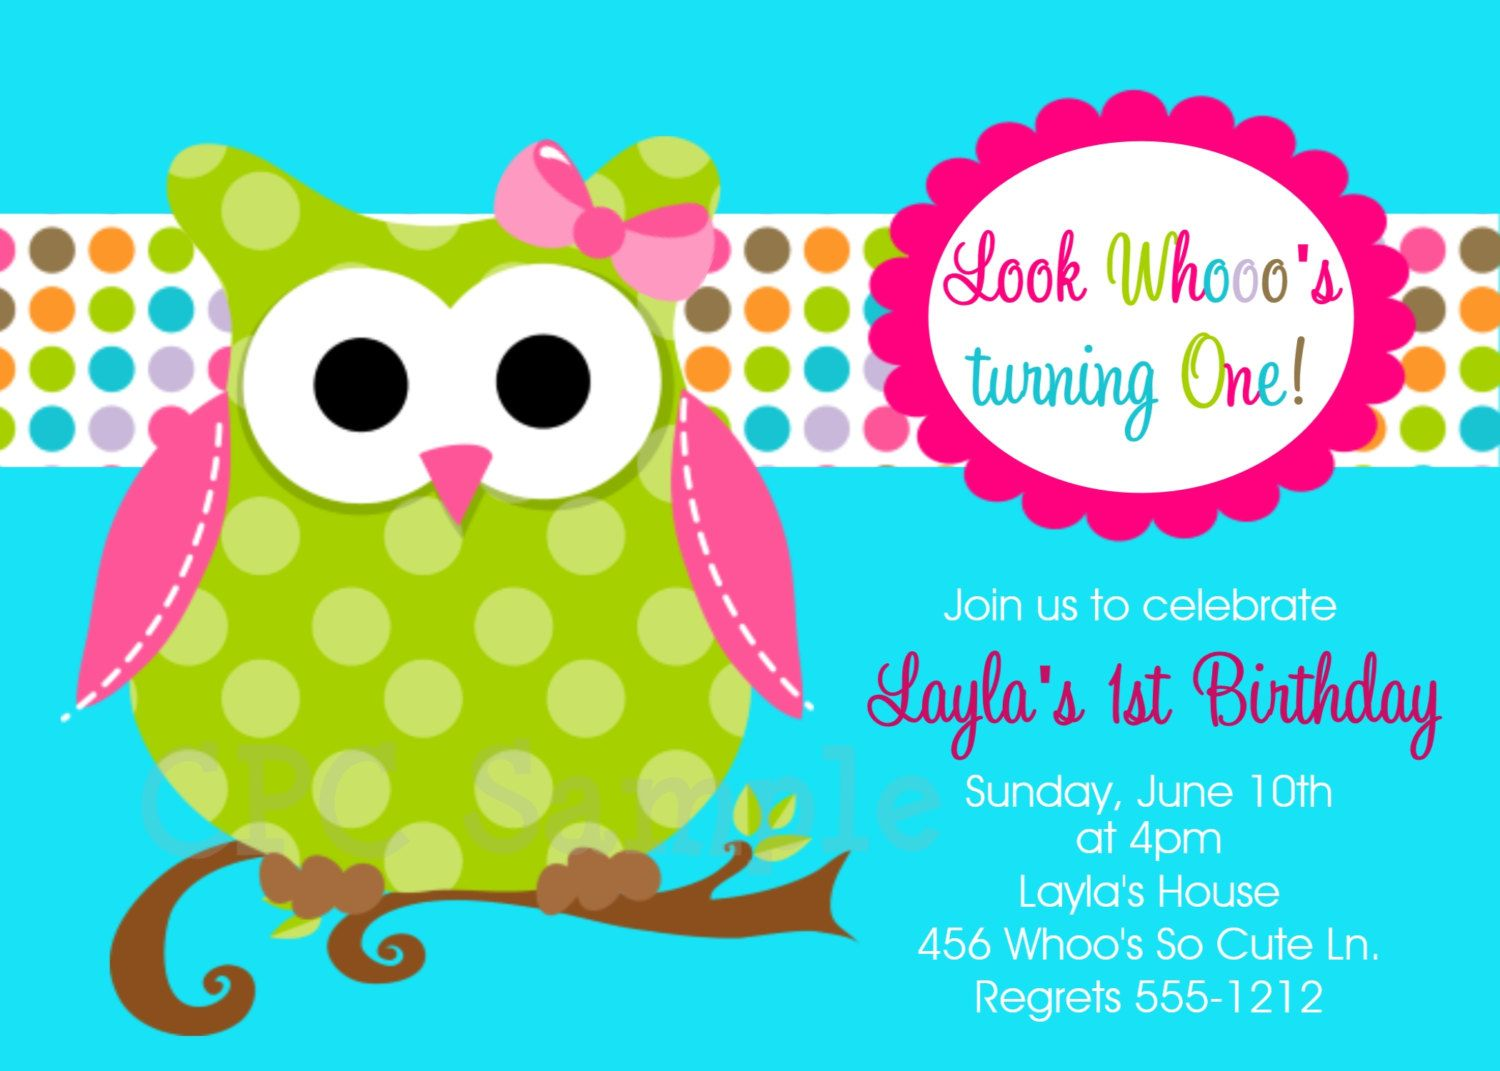 Owl birthday invitation pink and green owl birthday party invitation owl birthday invitation pink and green owl birthday party invitation printable 1500 via etsy filmwisefo Image collections